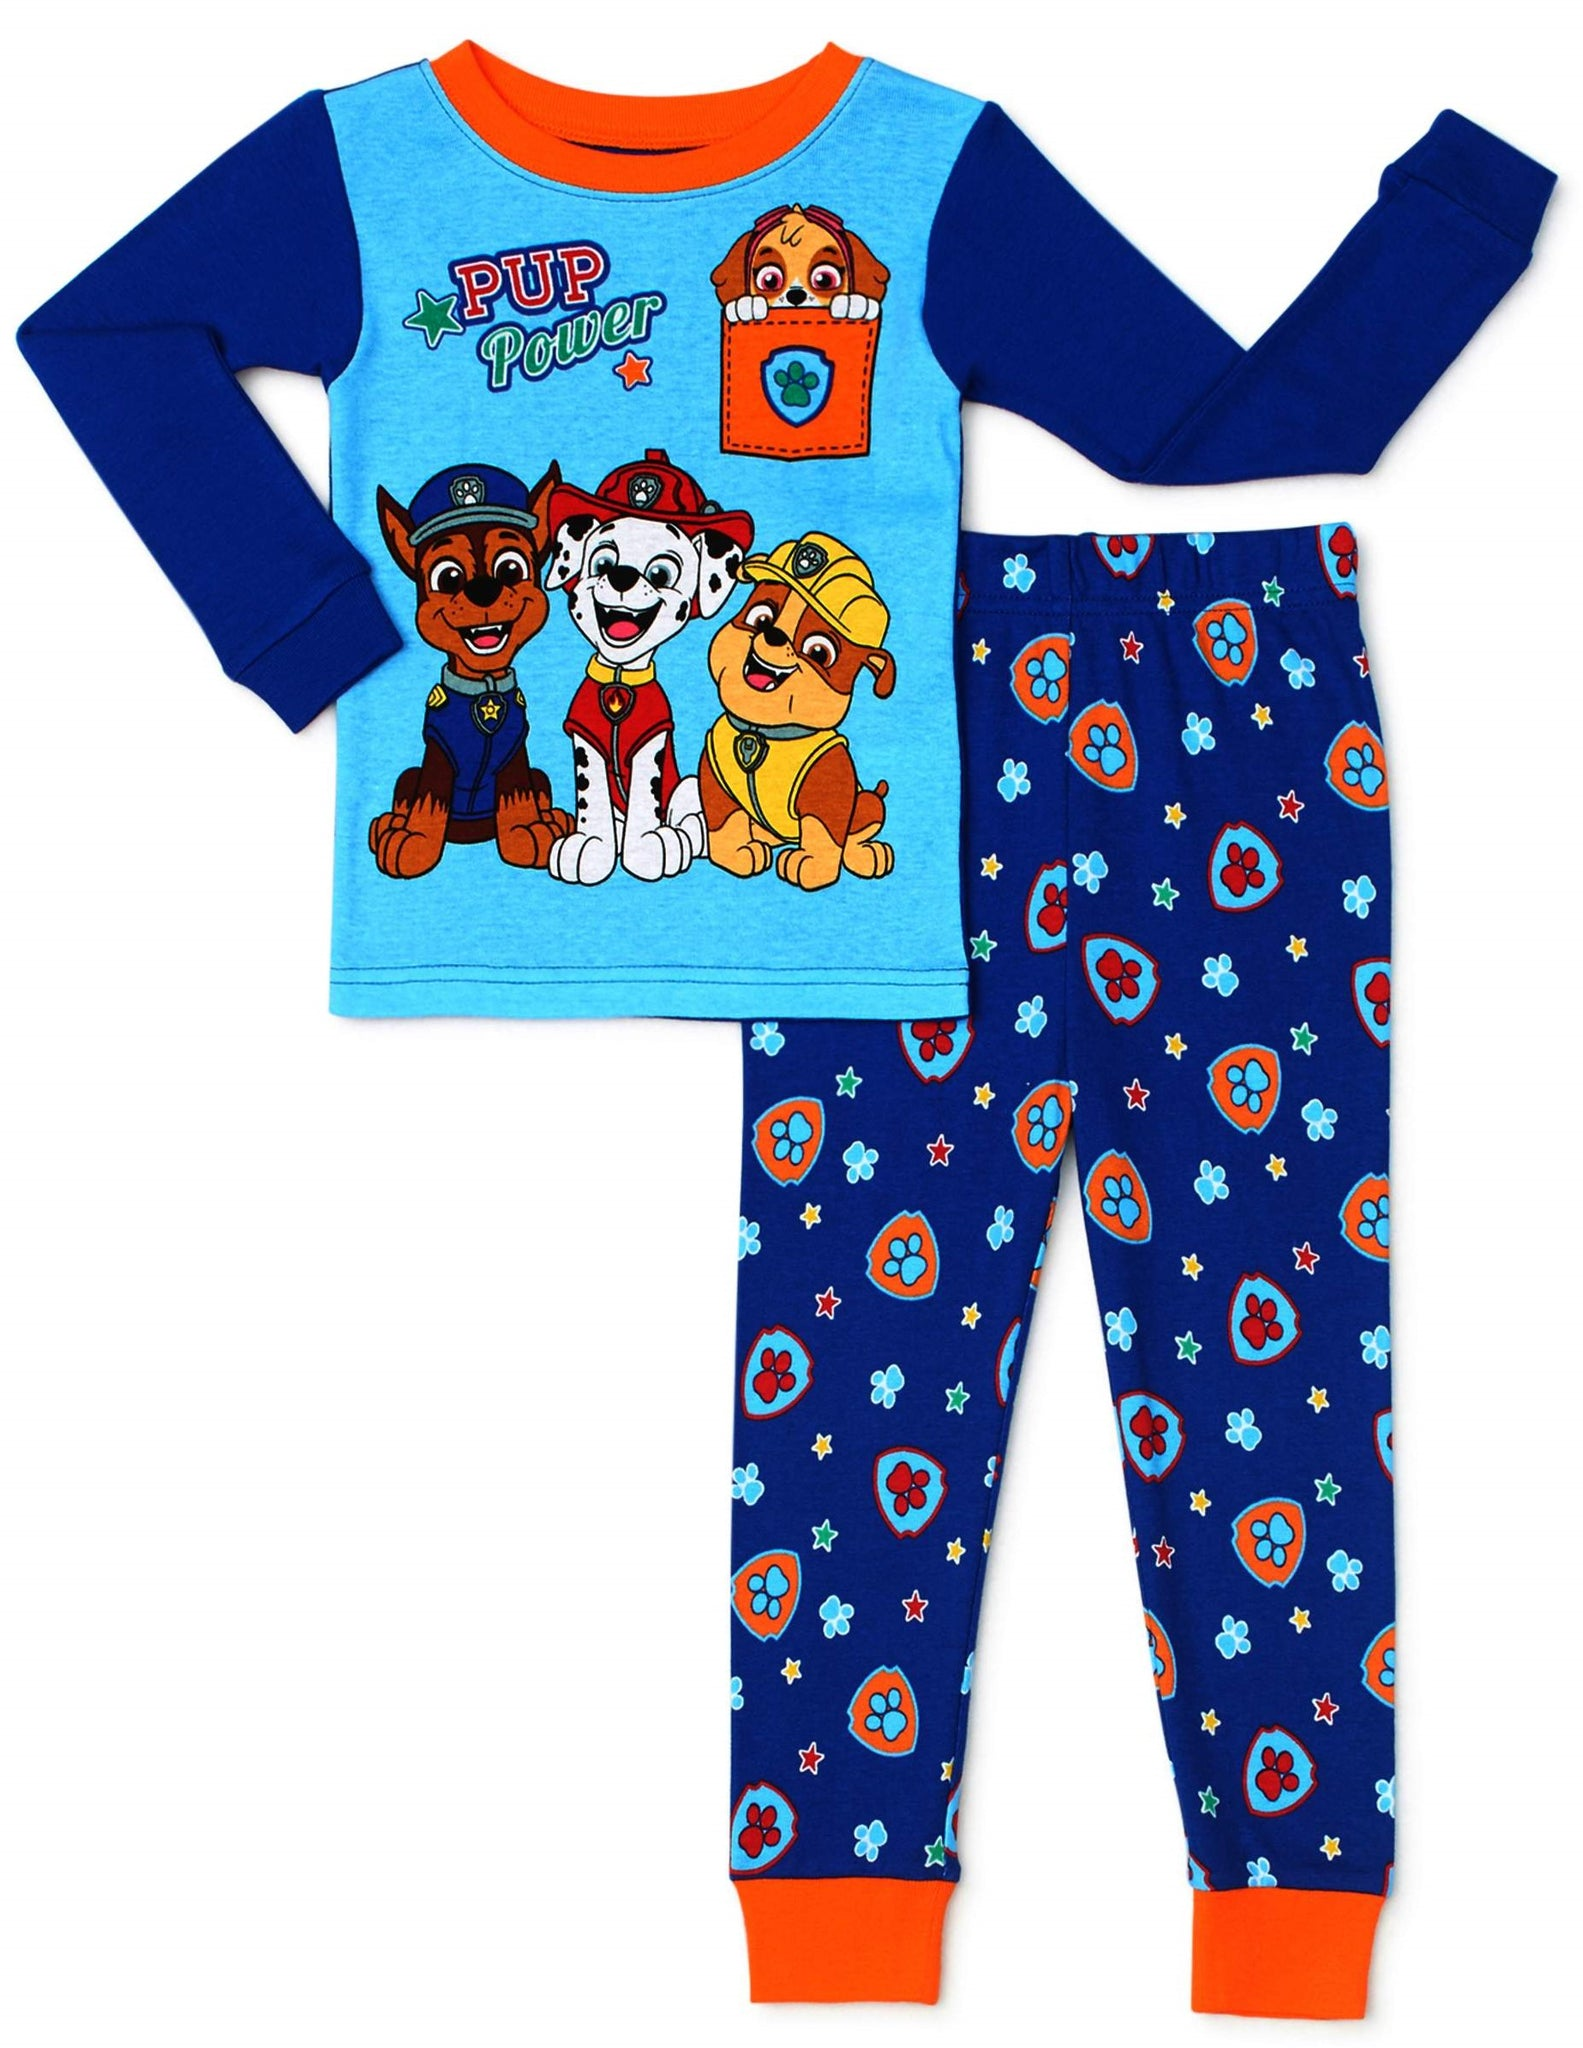 Paw Patrol Pup Power 2pc Boys Toddler Pajama Set 3T